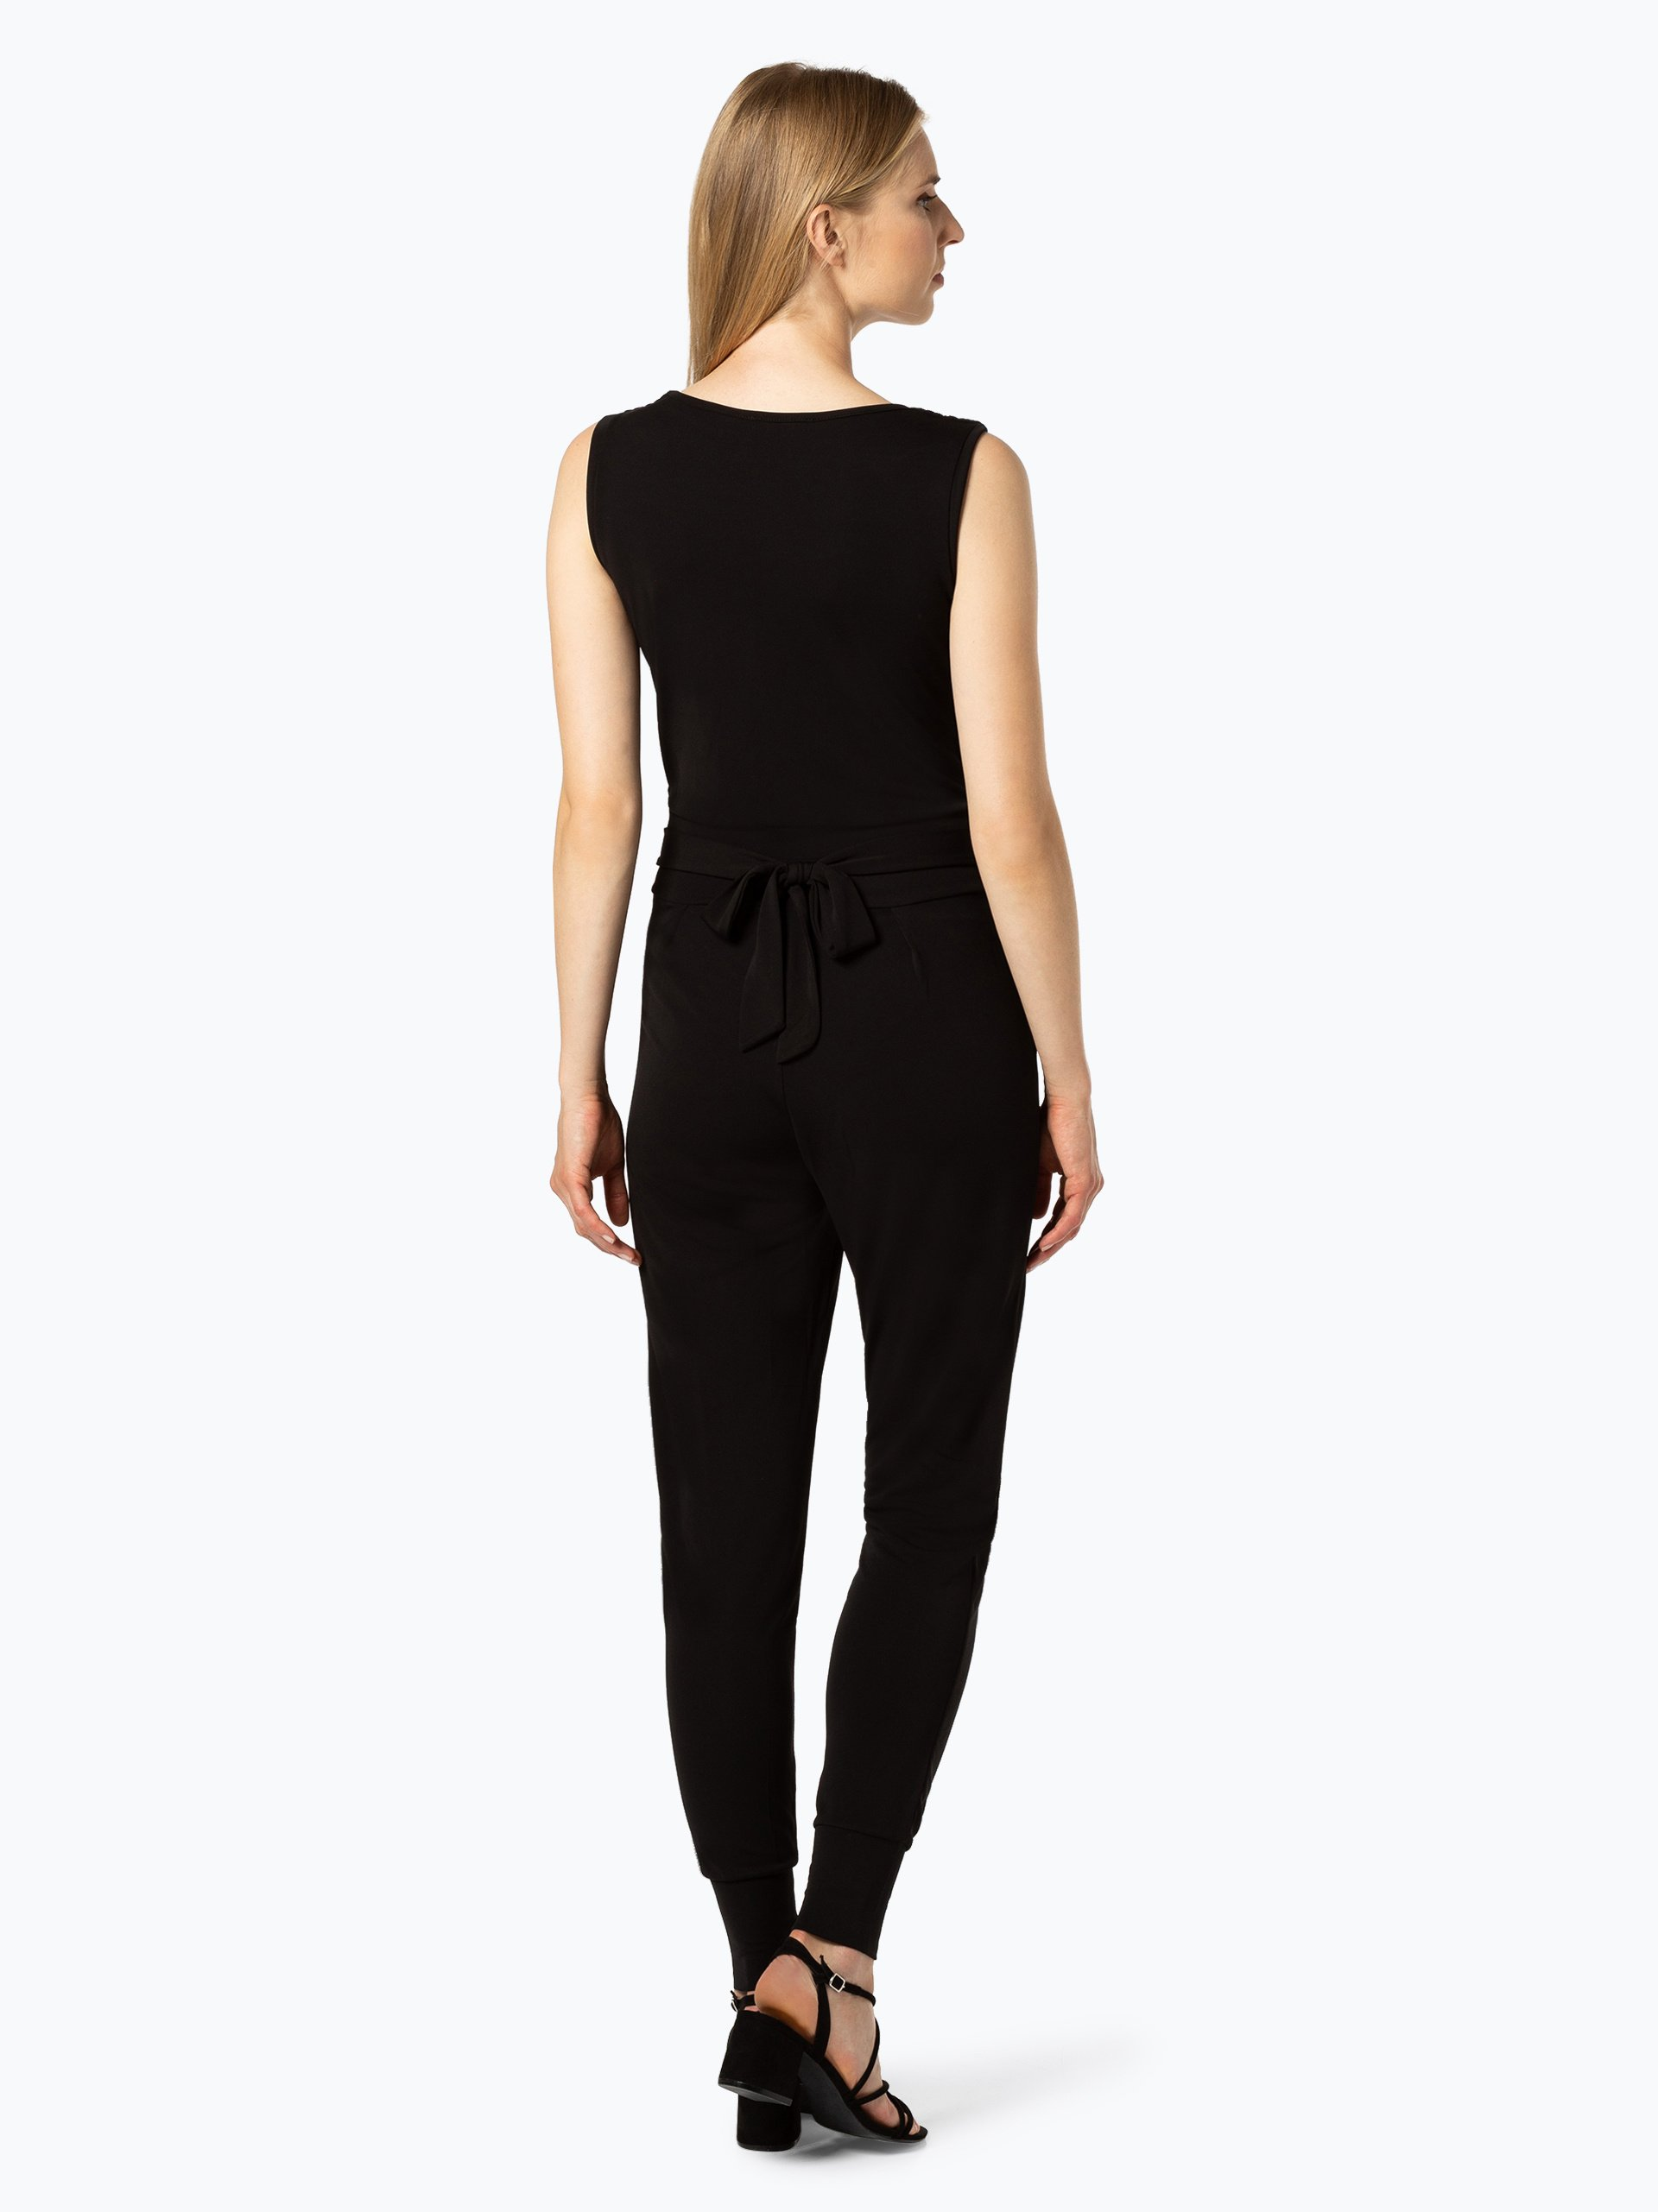 Cartoon Daydream Damen Jumpsuit